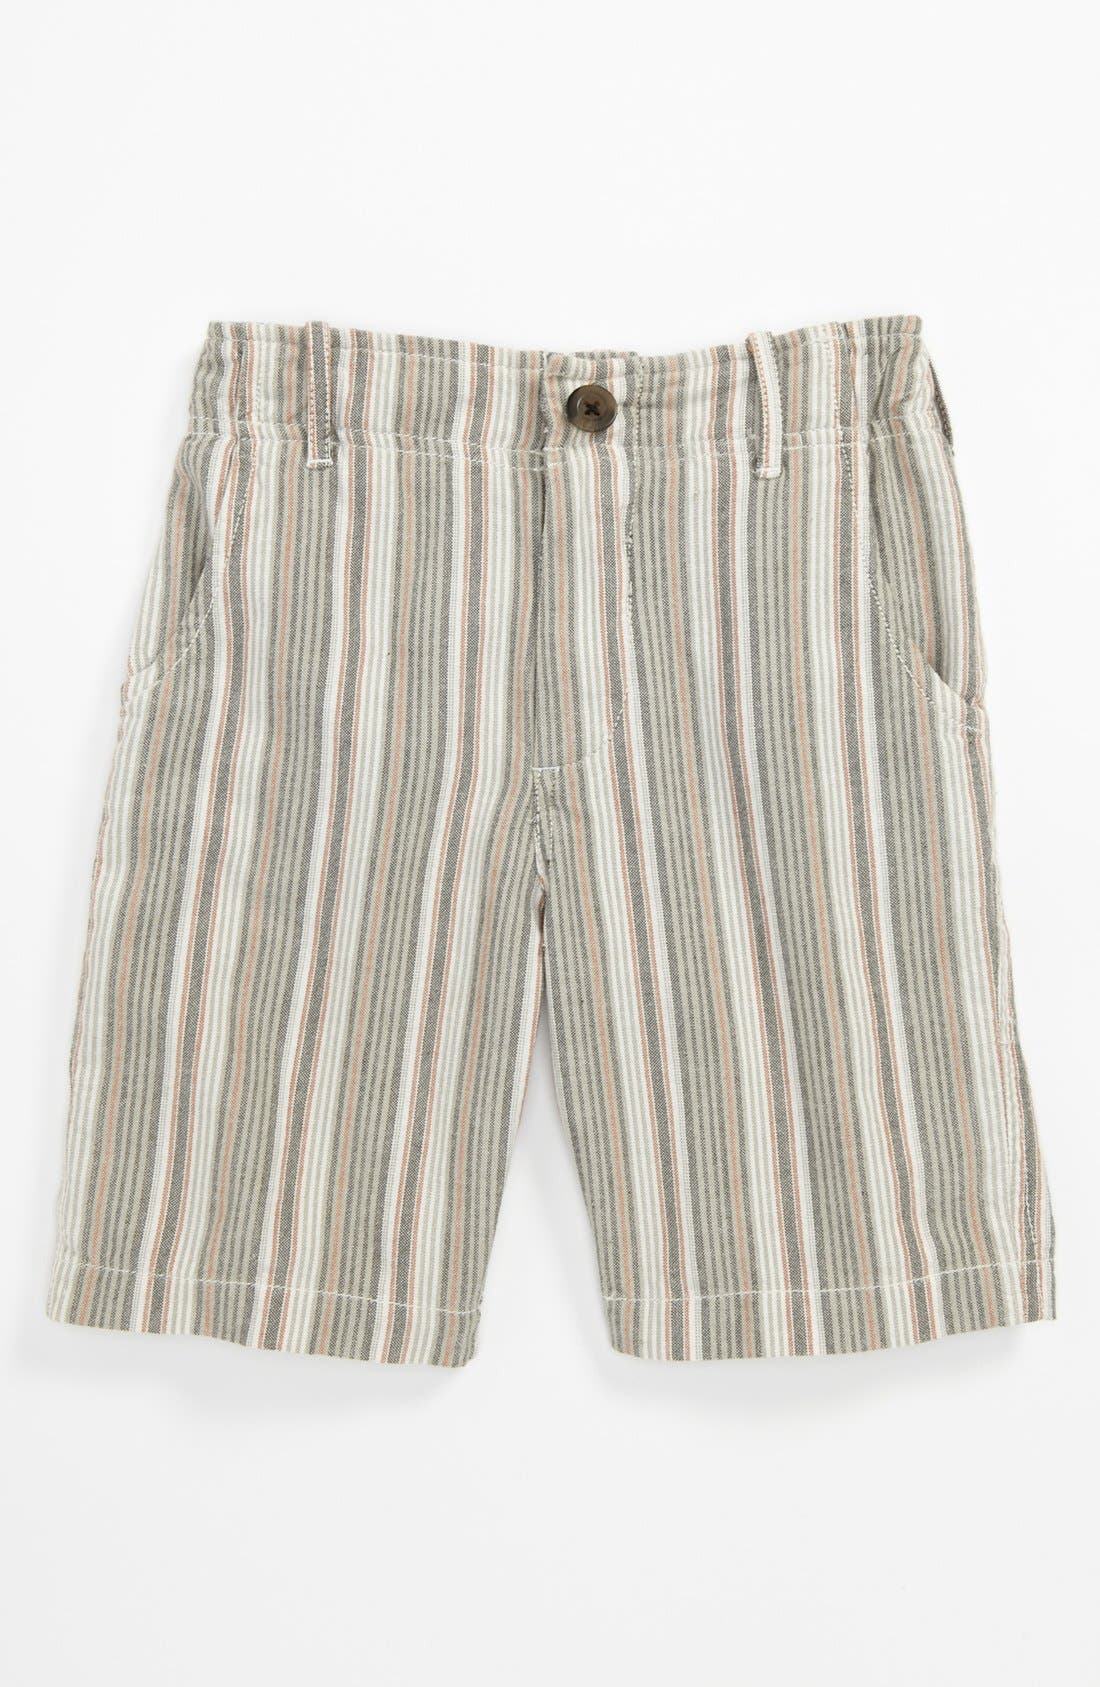 Main Image - Peek 'Benito' Stripe Shorts (Big Boys)